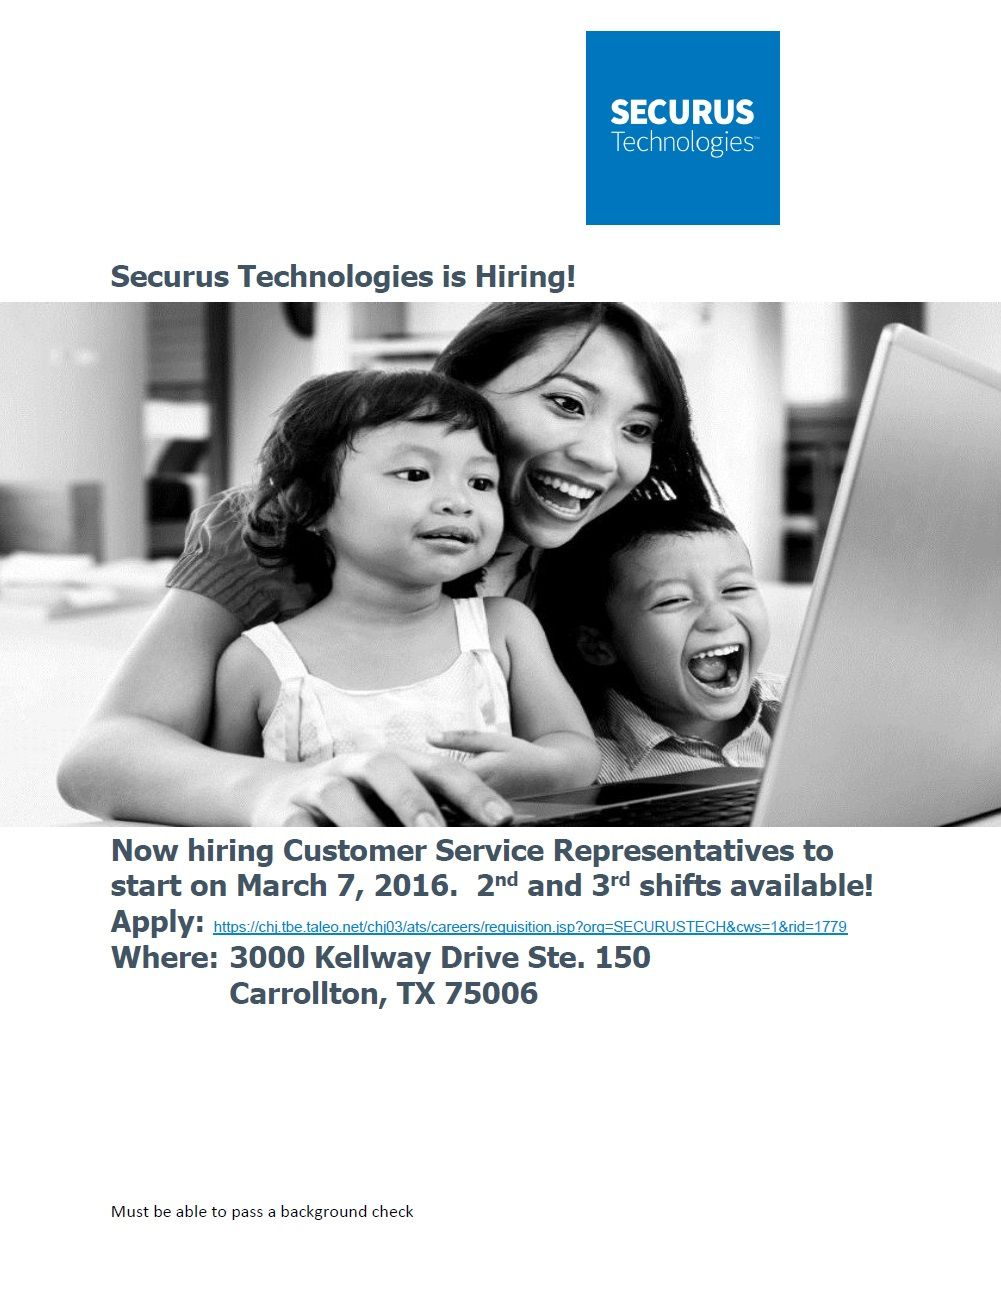 Securus Technologies is hiring Customer Service